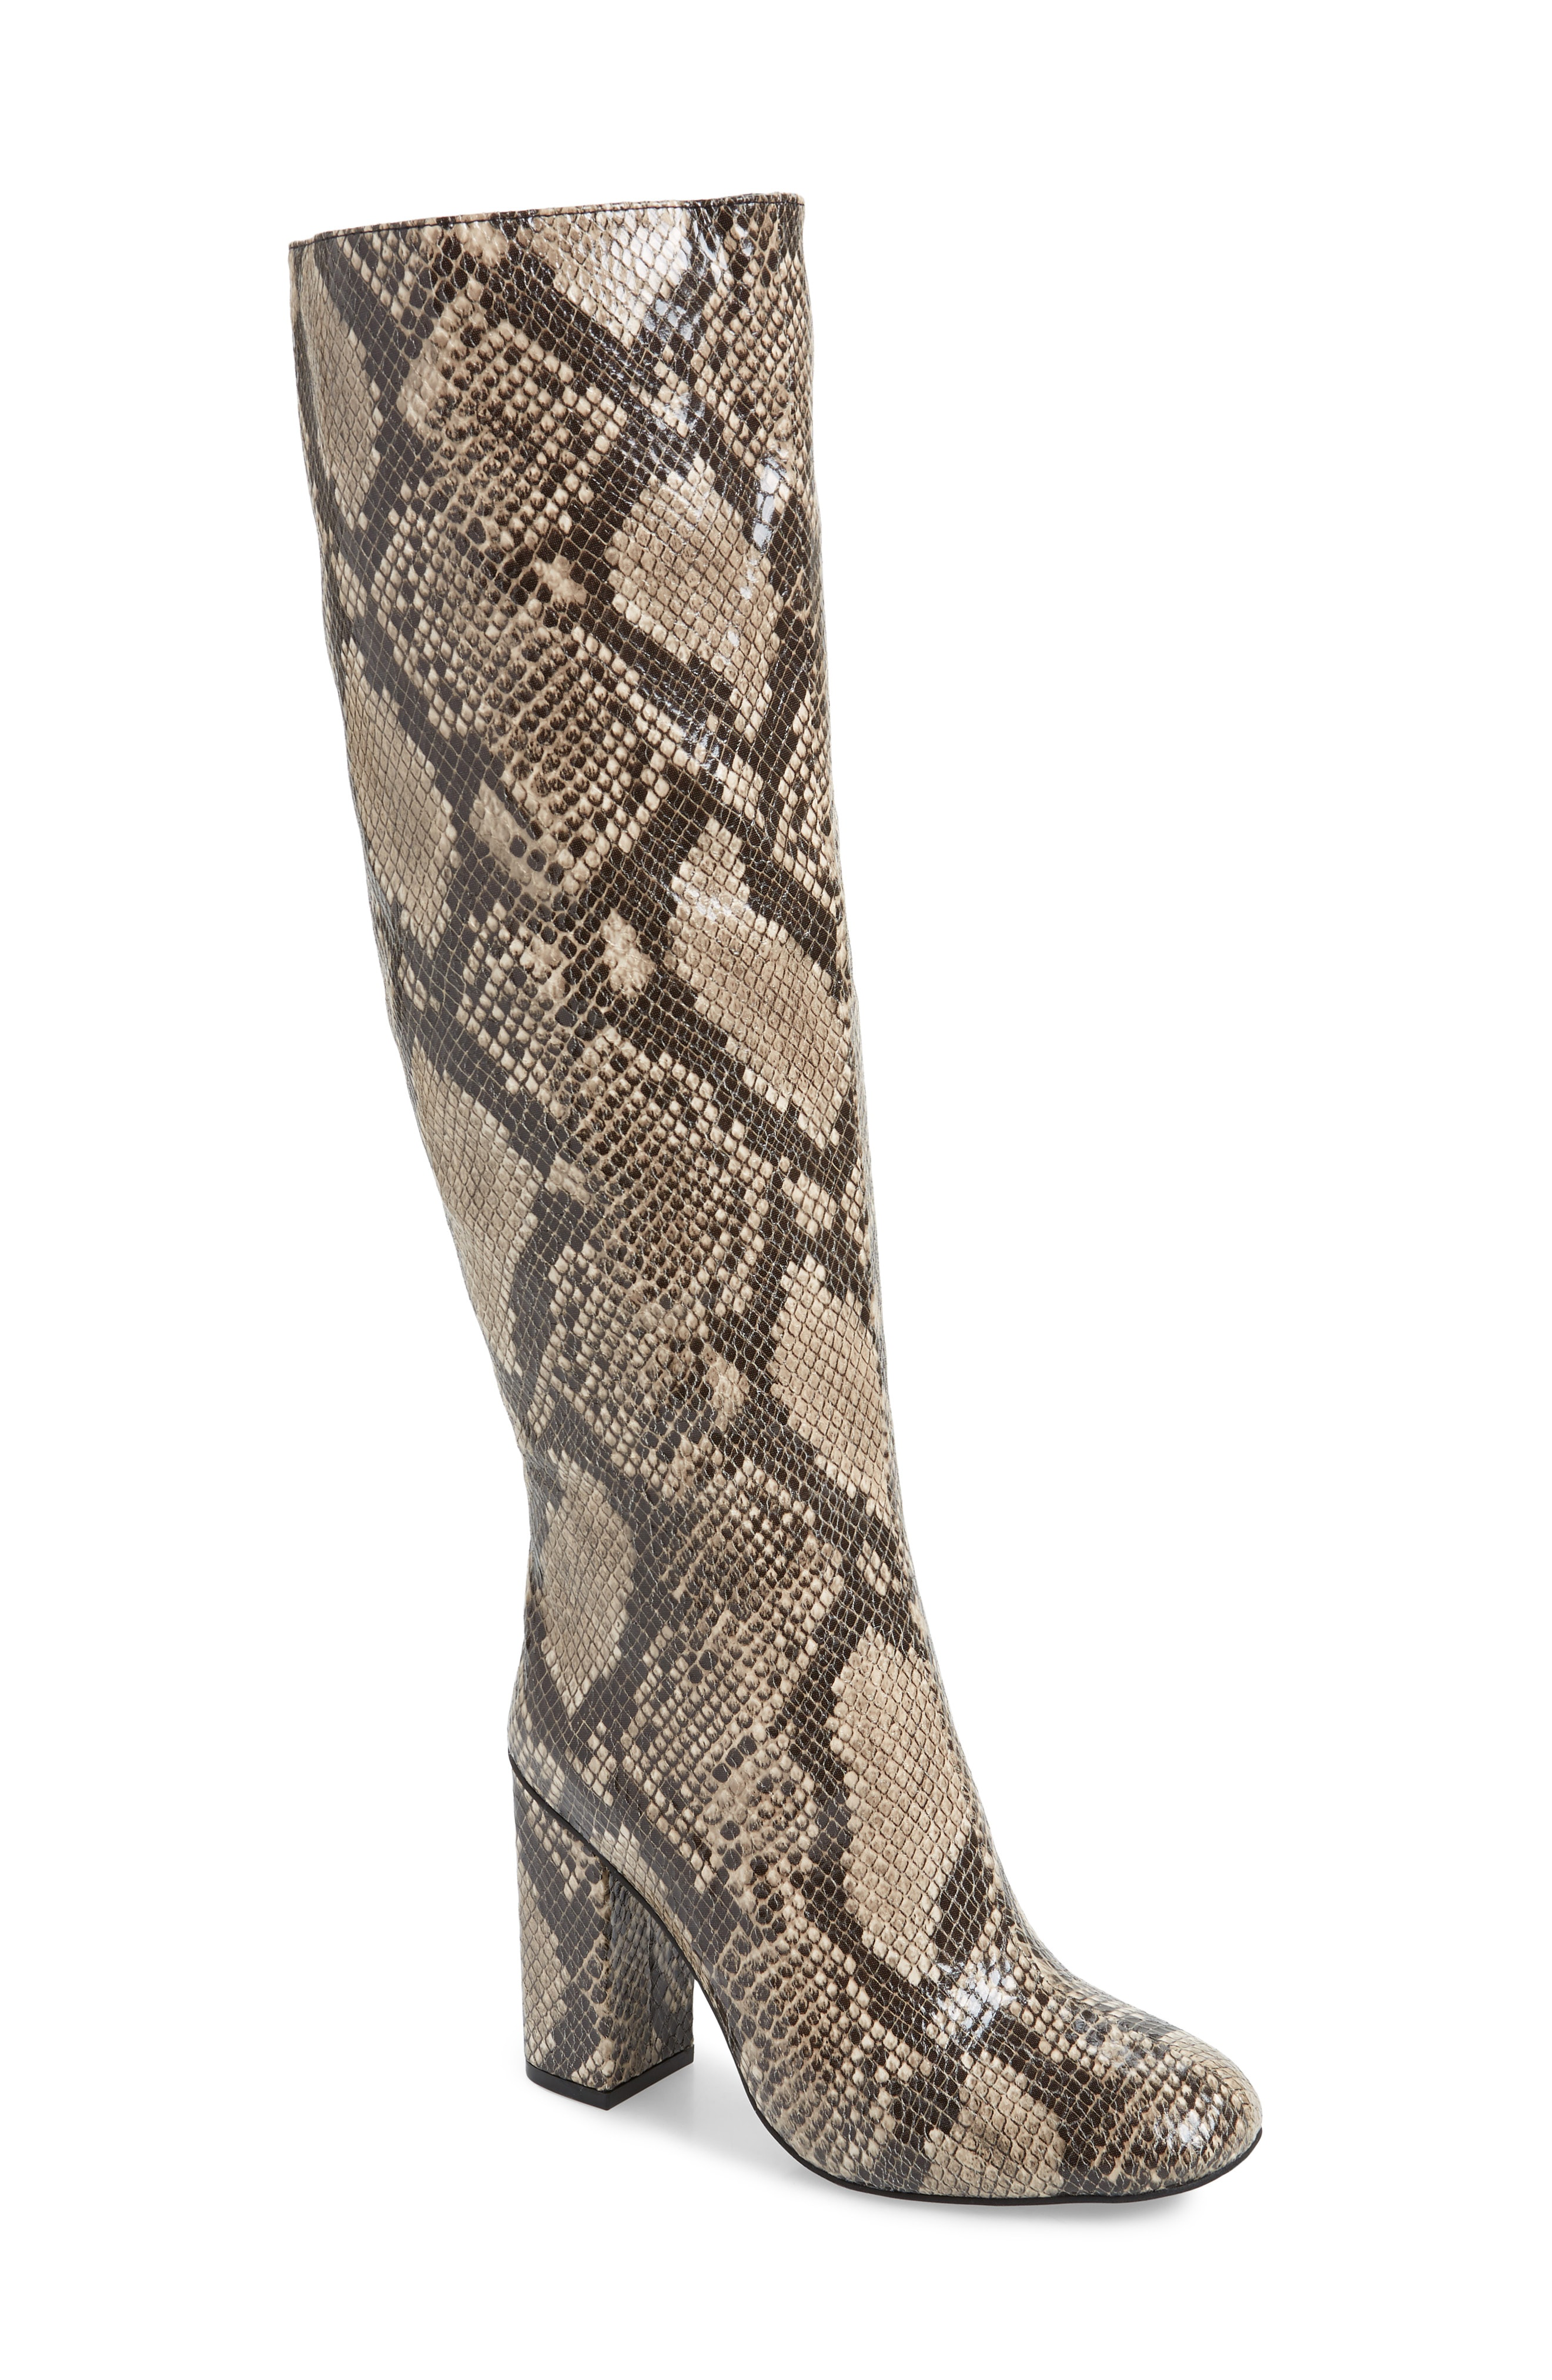 4759e378c4 Jeffrey Campbell Bandera Knee High Boot In Beige Snake Print Faux Leather